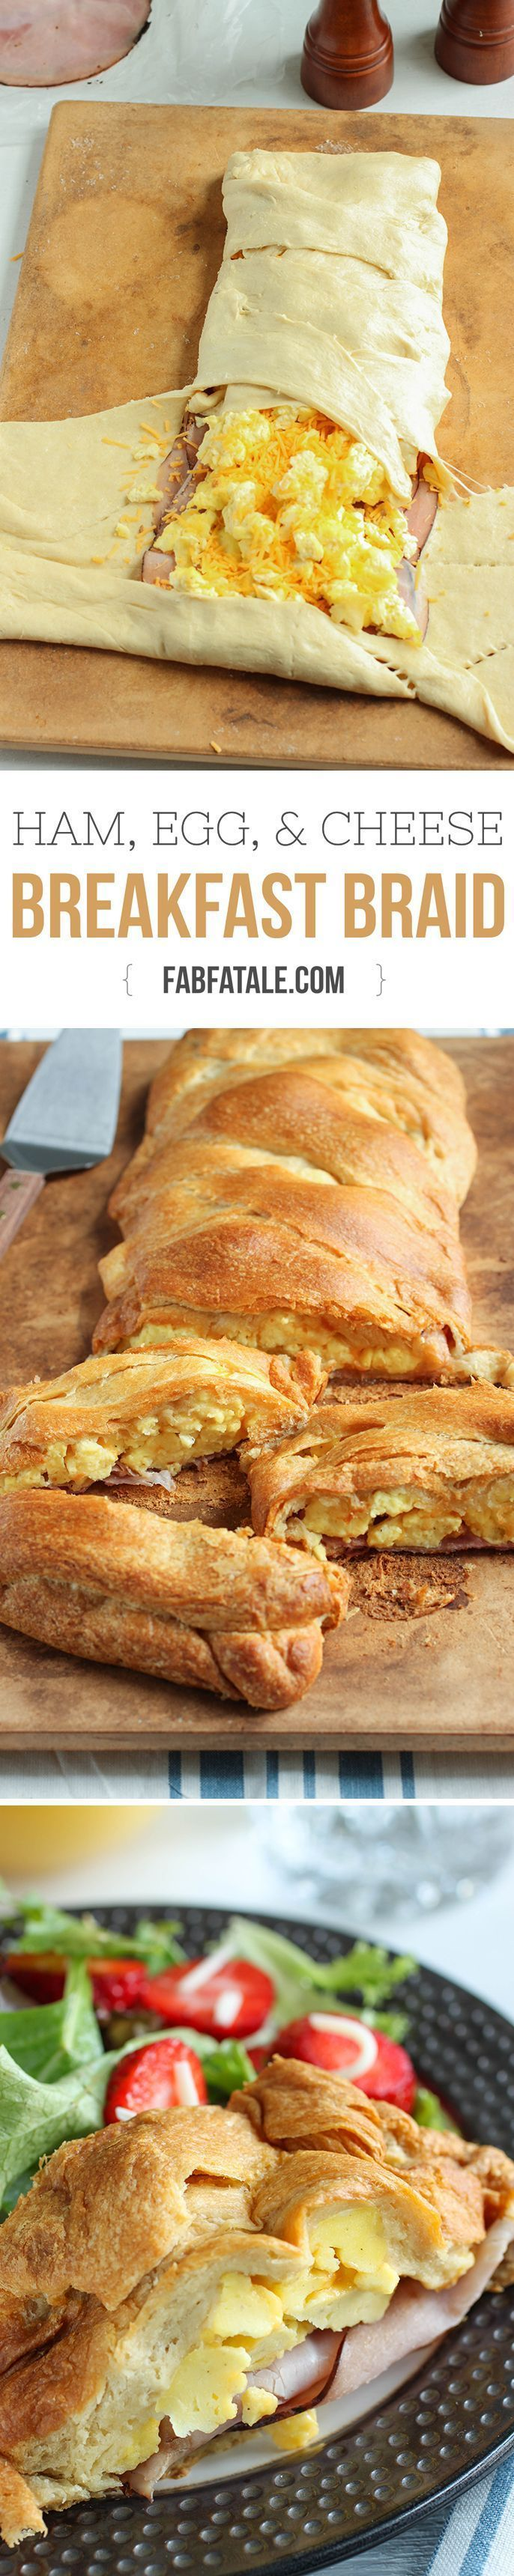 feeds a crowd and is SO good - ham, egg, and cheese croissant breakfast braid recipe #brunch